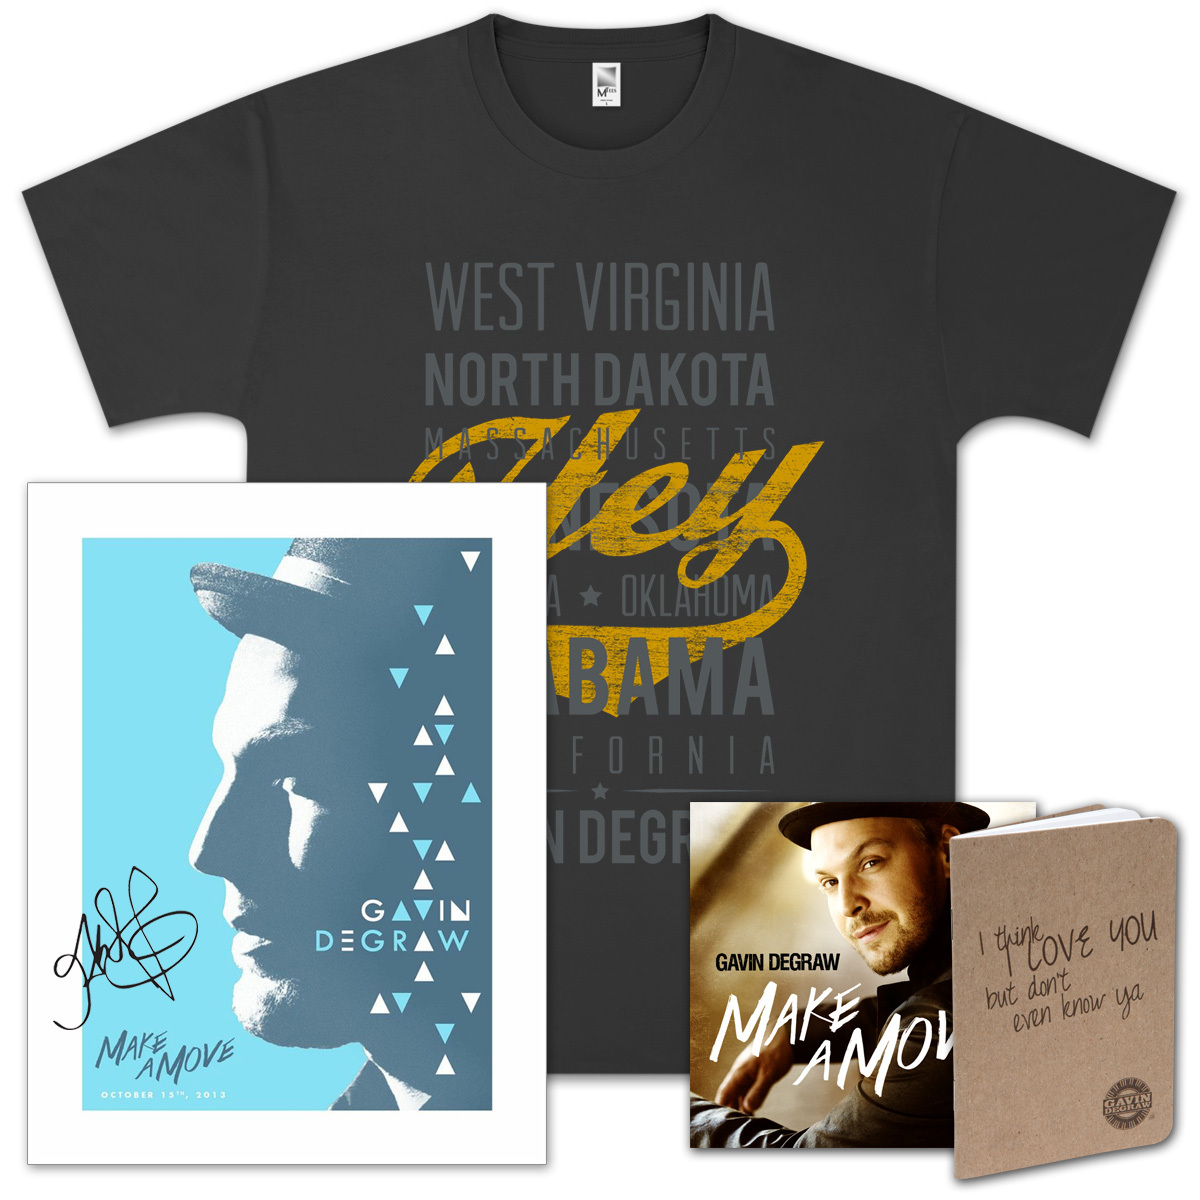 Gavin DeGraw - Make A Move Unisex Deluxe Package (Signed)